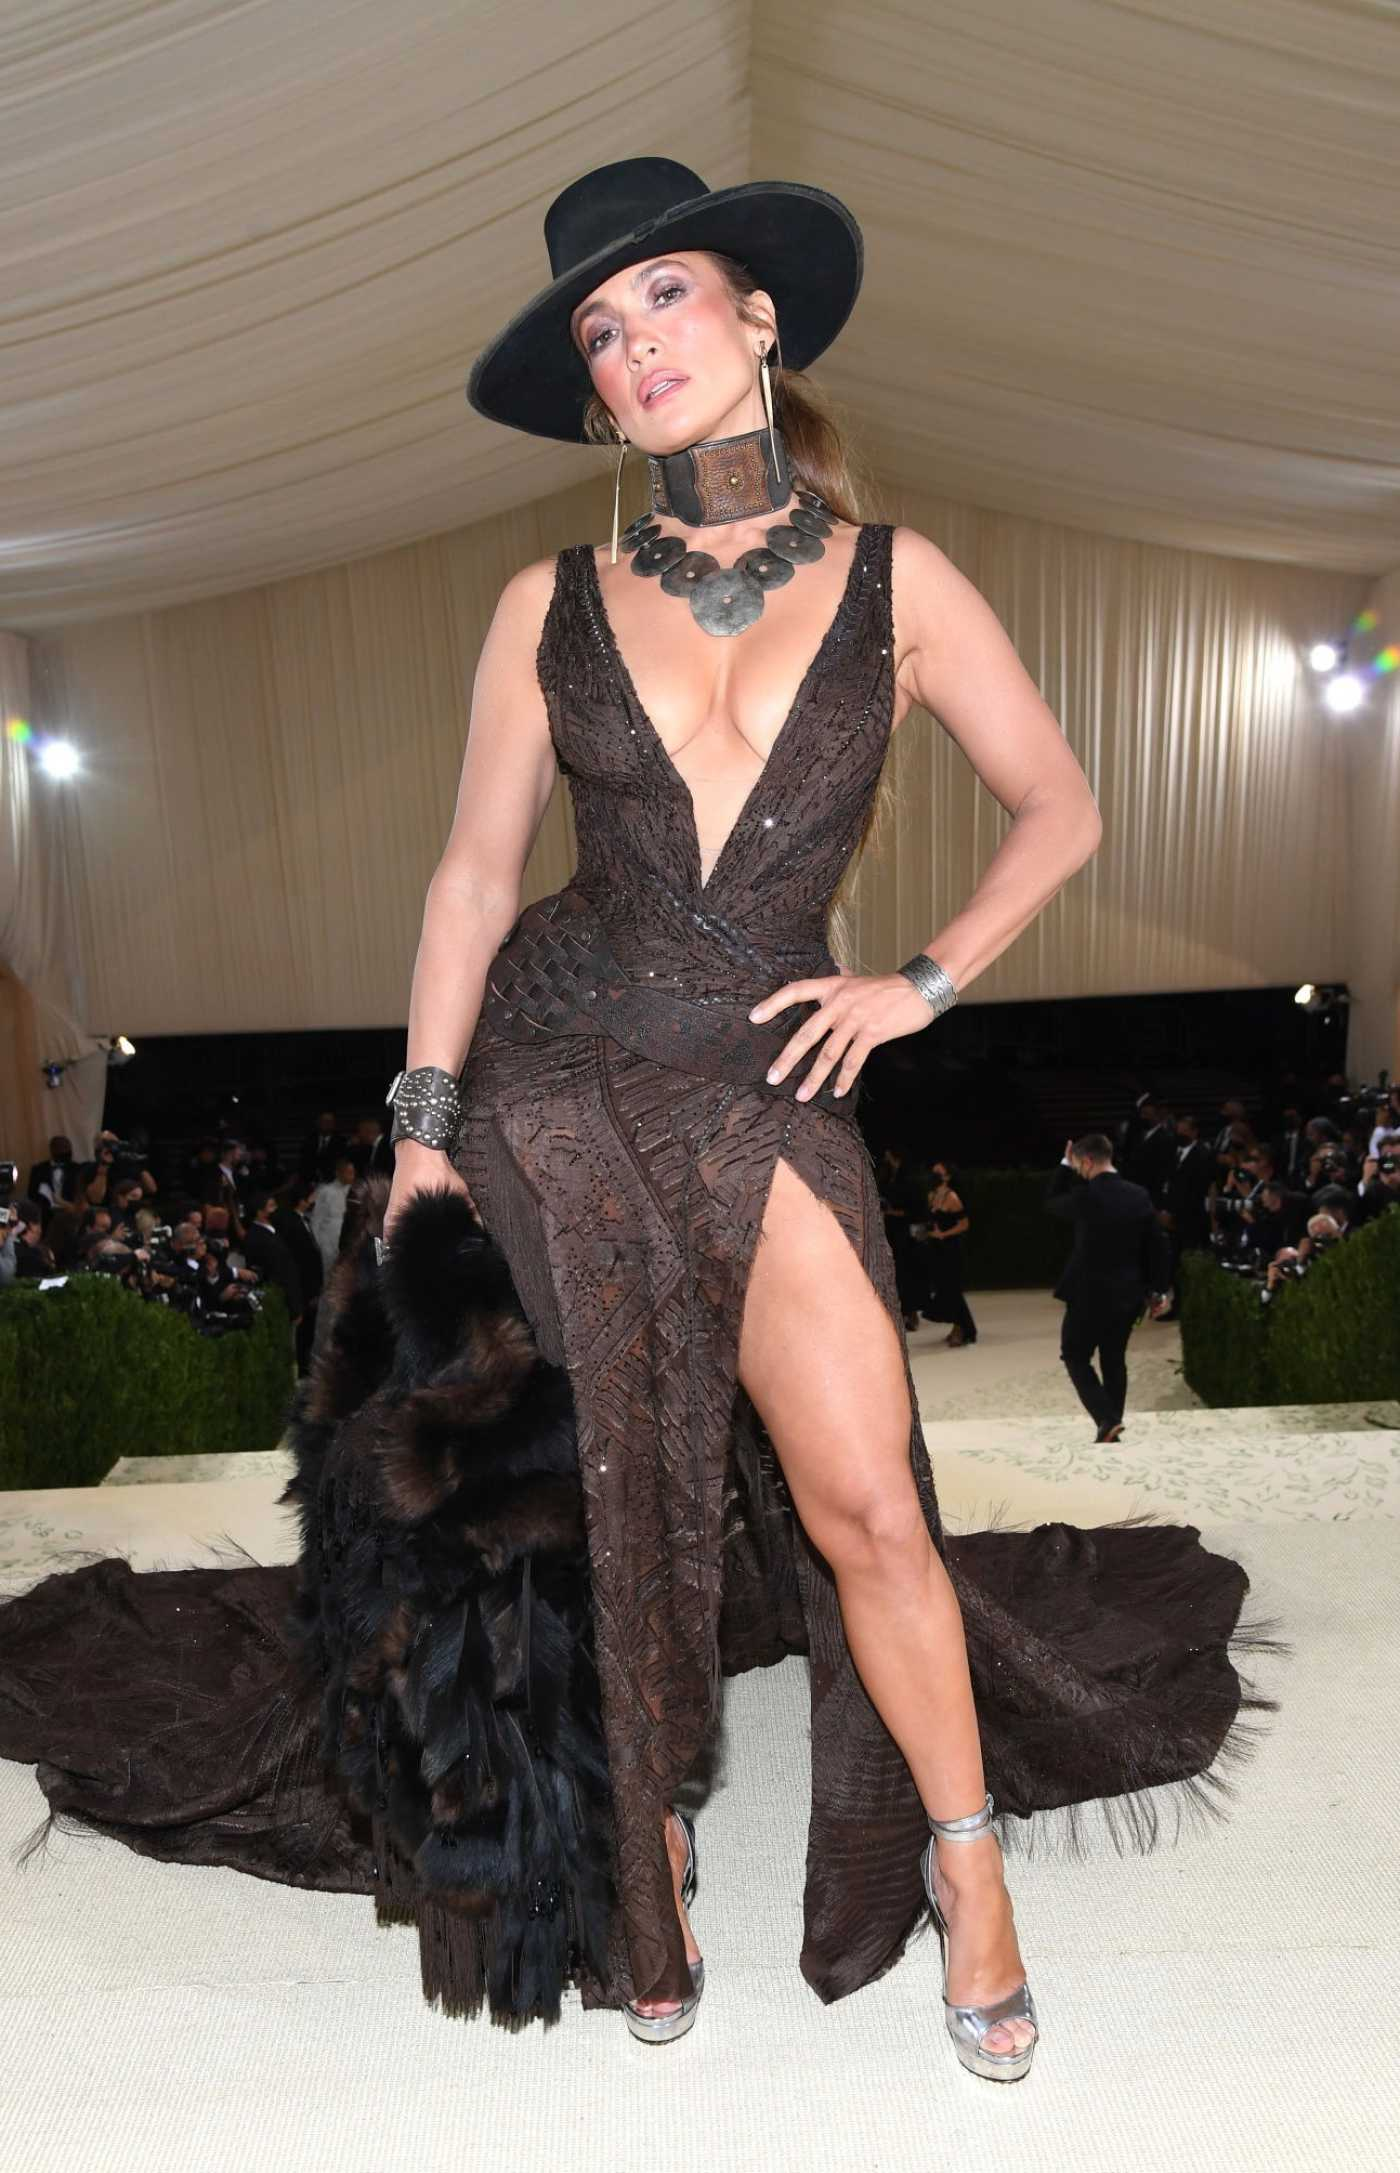 Jennifer Lopez Attends 2021 Met Gala In America: A Lexicon of Fashion at Metropolitan Museum of Art in New York City 09/13/2021